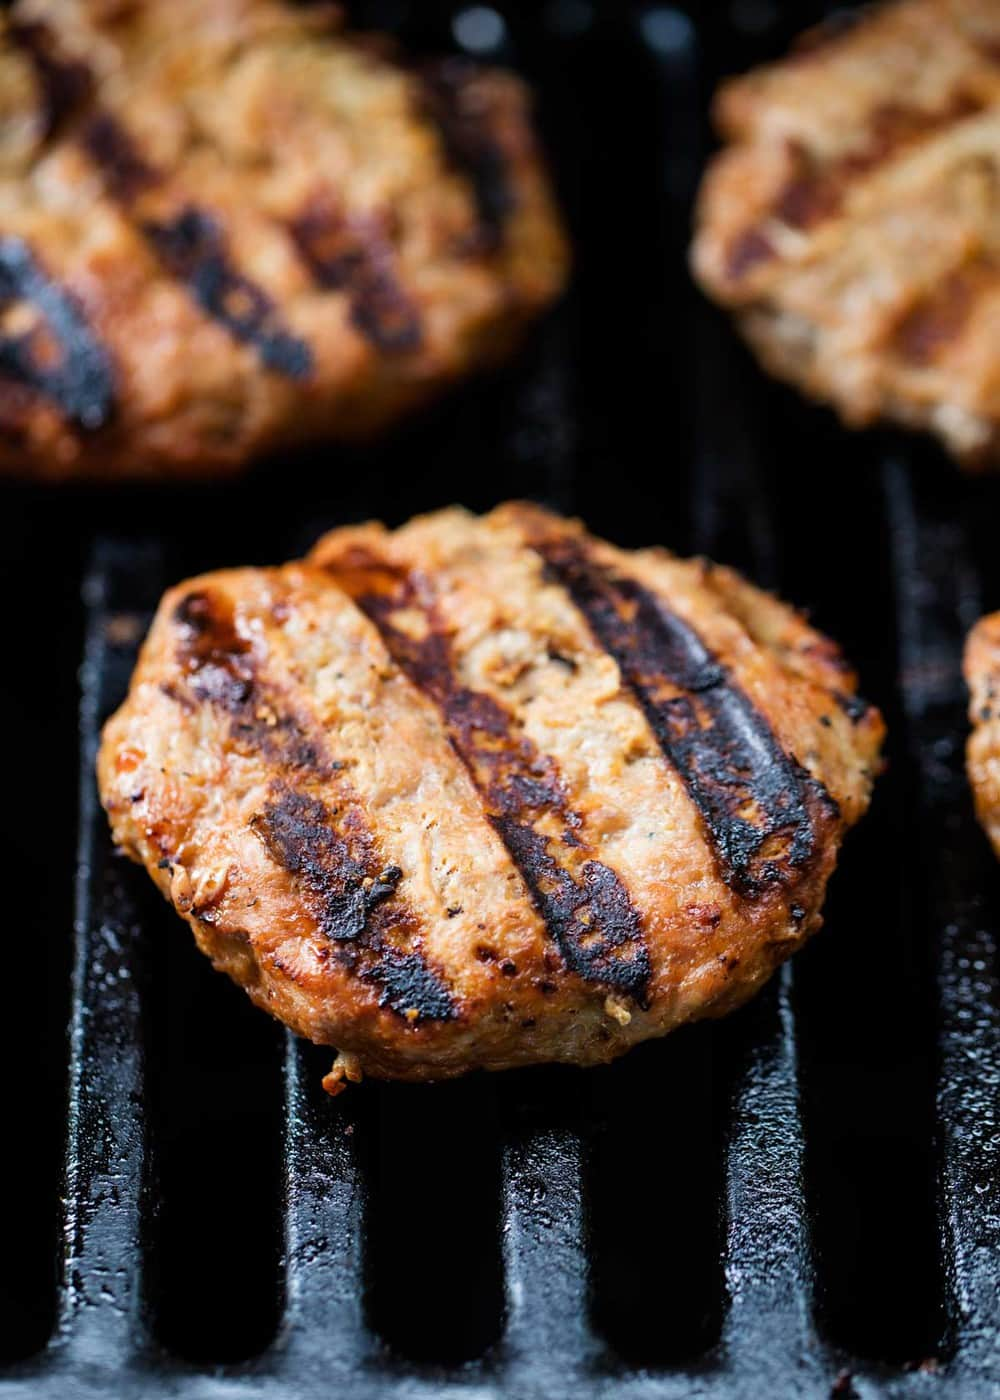 turkey burgers with grill marks on the grill